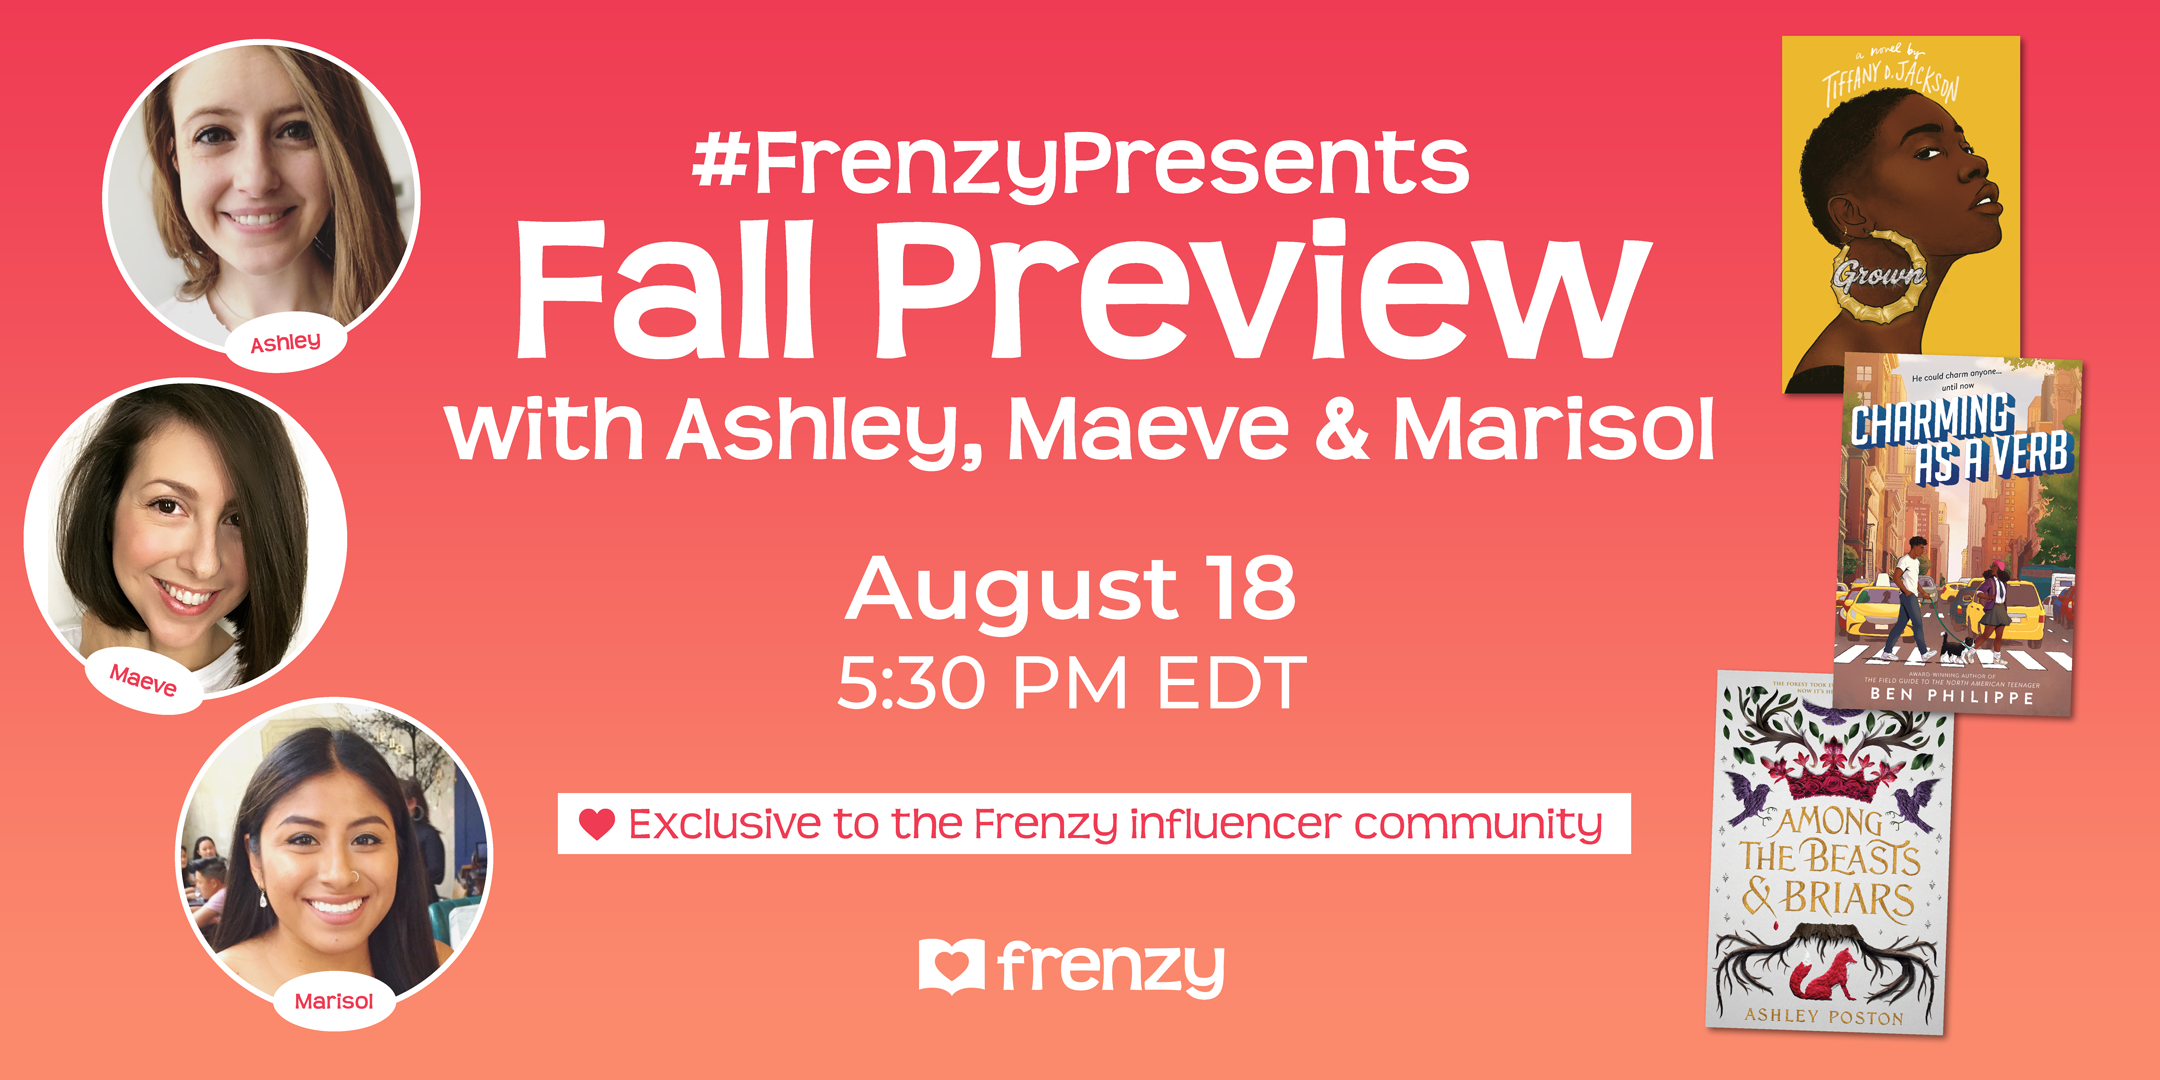 FrenzyPresents-Eventbrite-FallPreview